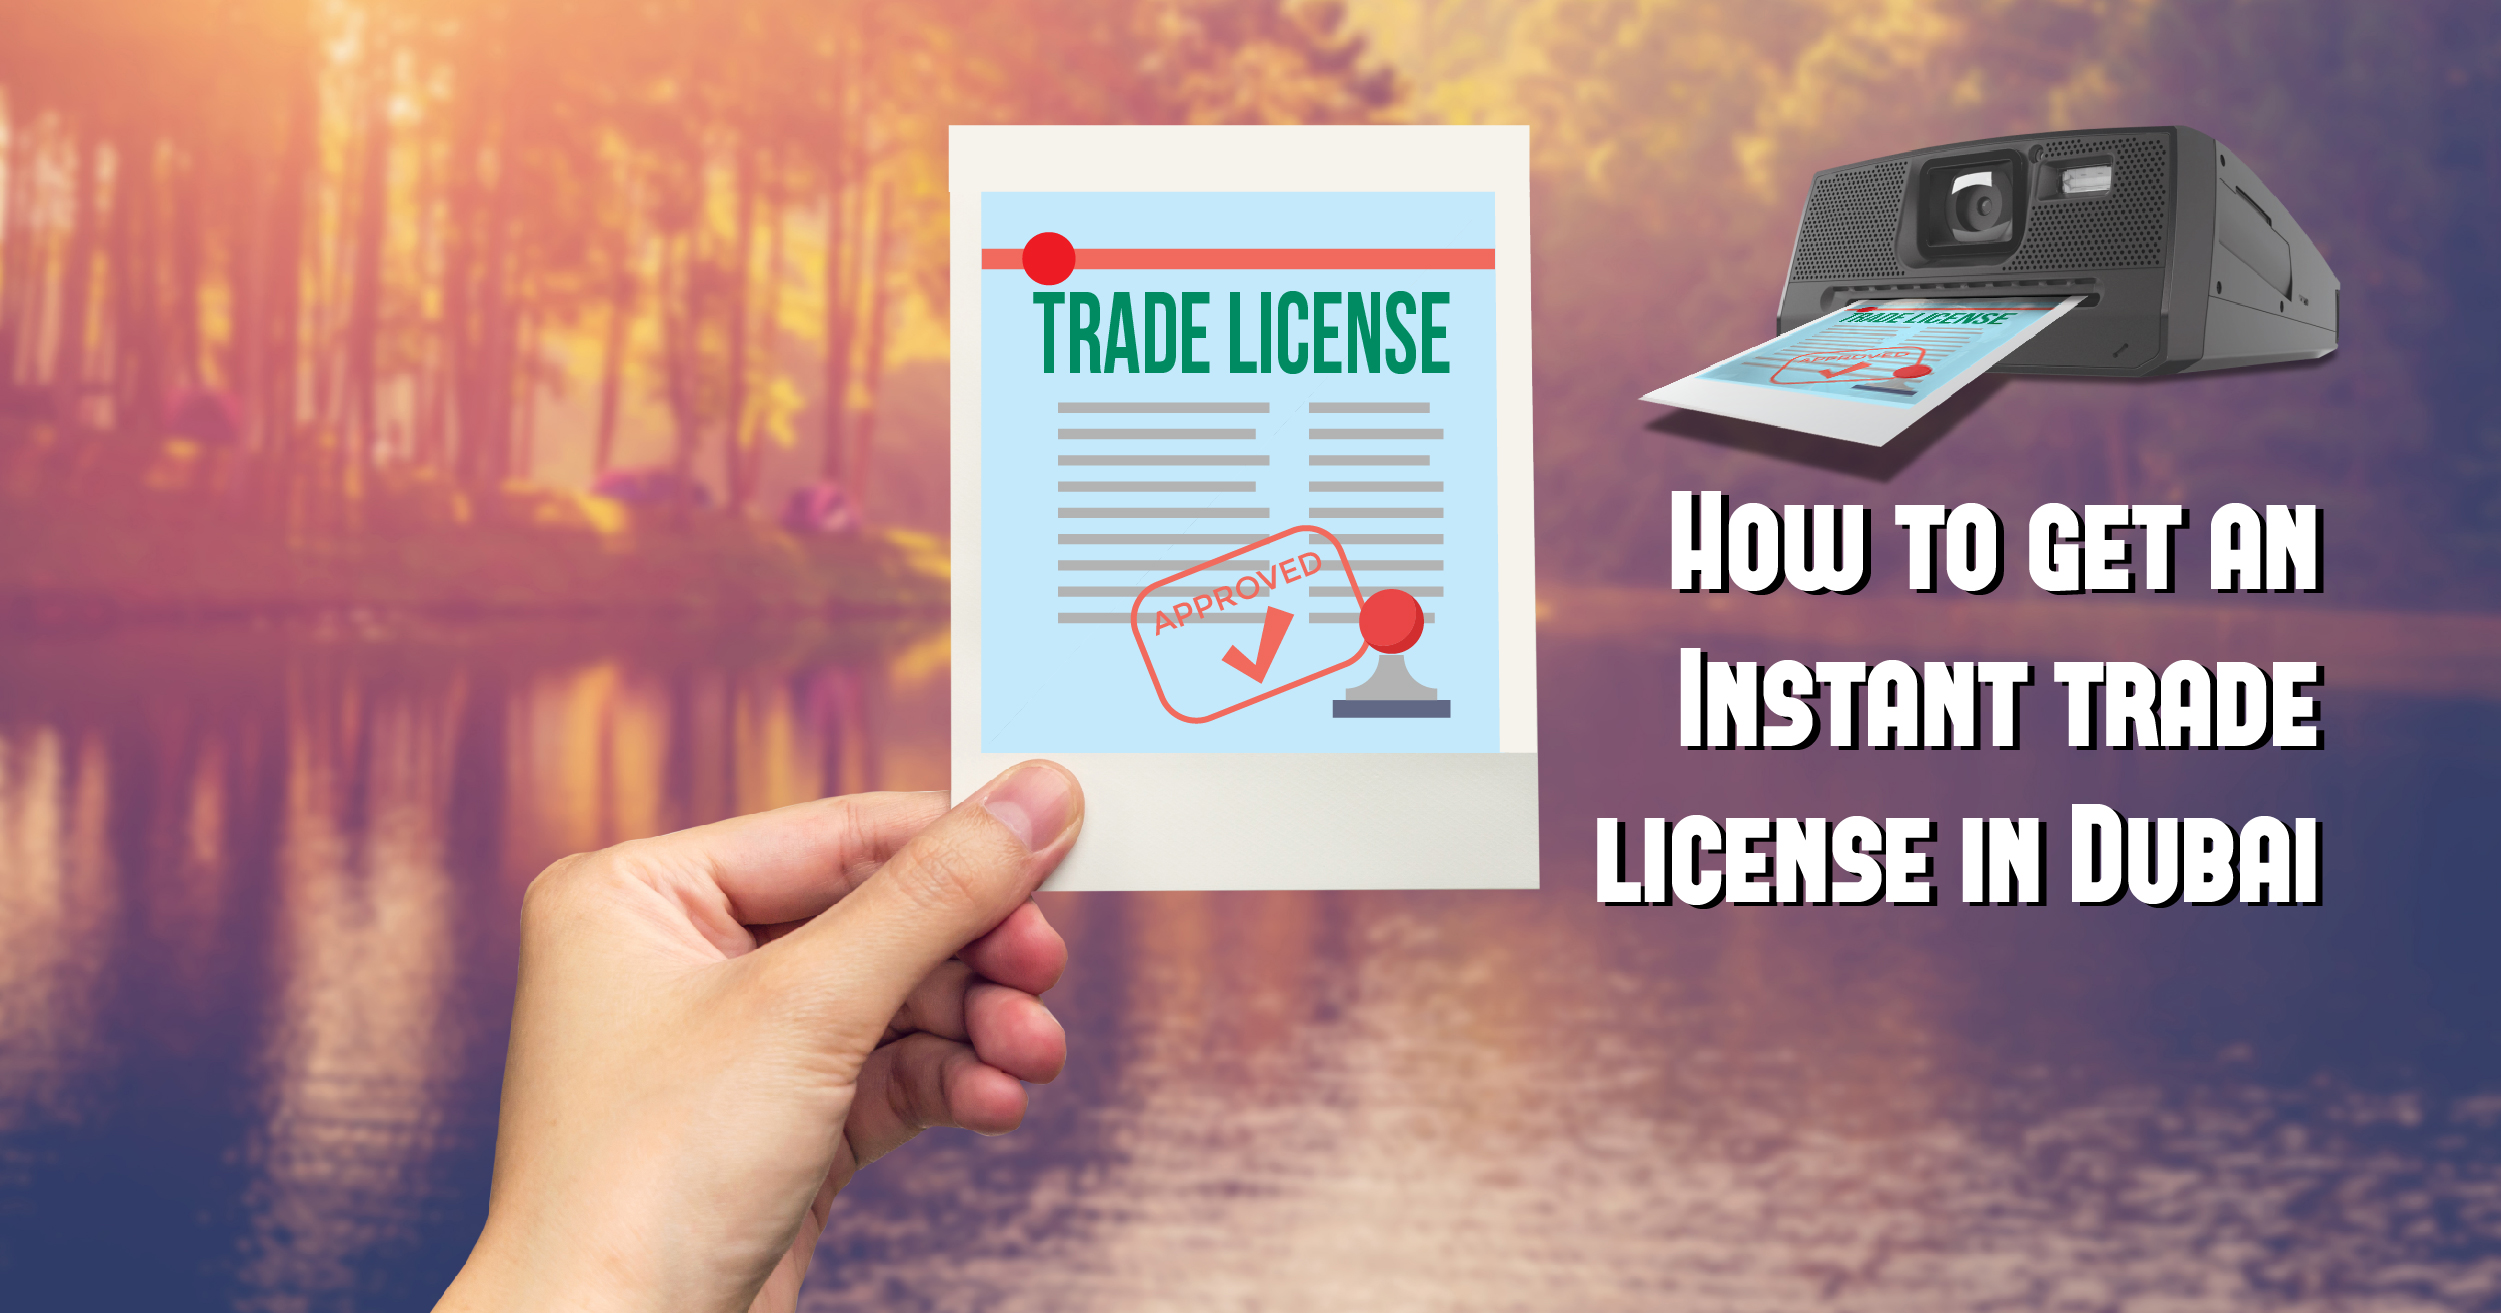 How to get an instant business license in Dubai?